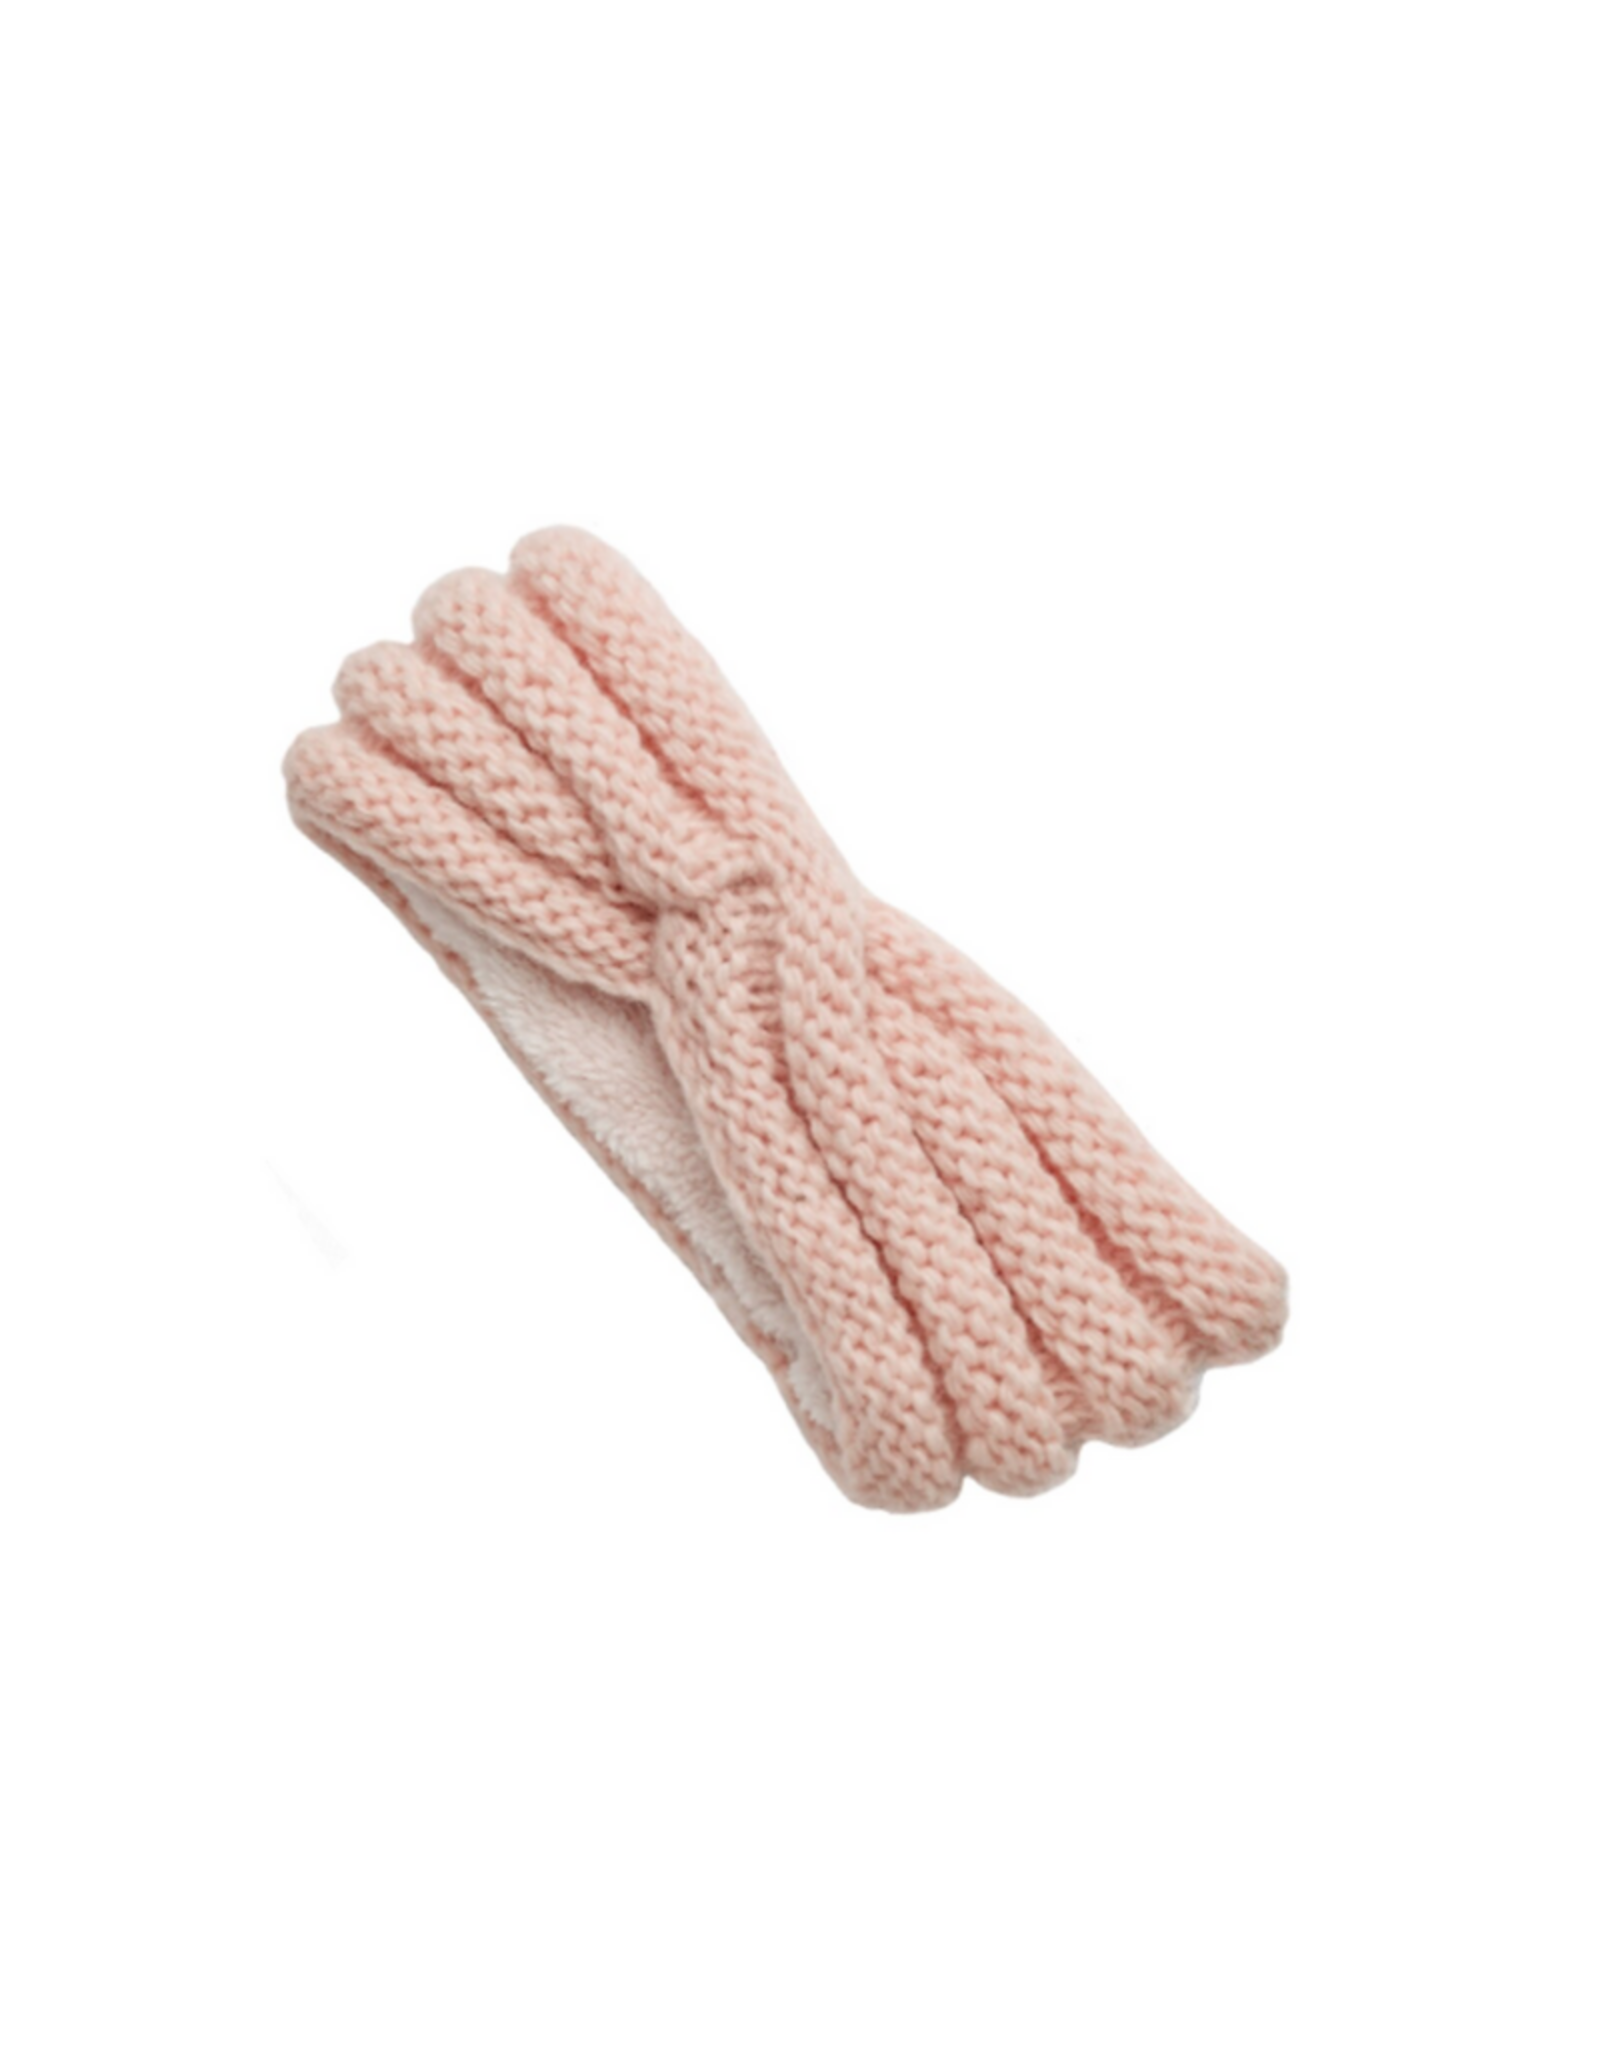 HEADBAND-KNIT-VERONICA, PINK QUARTZ